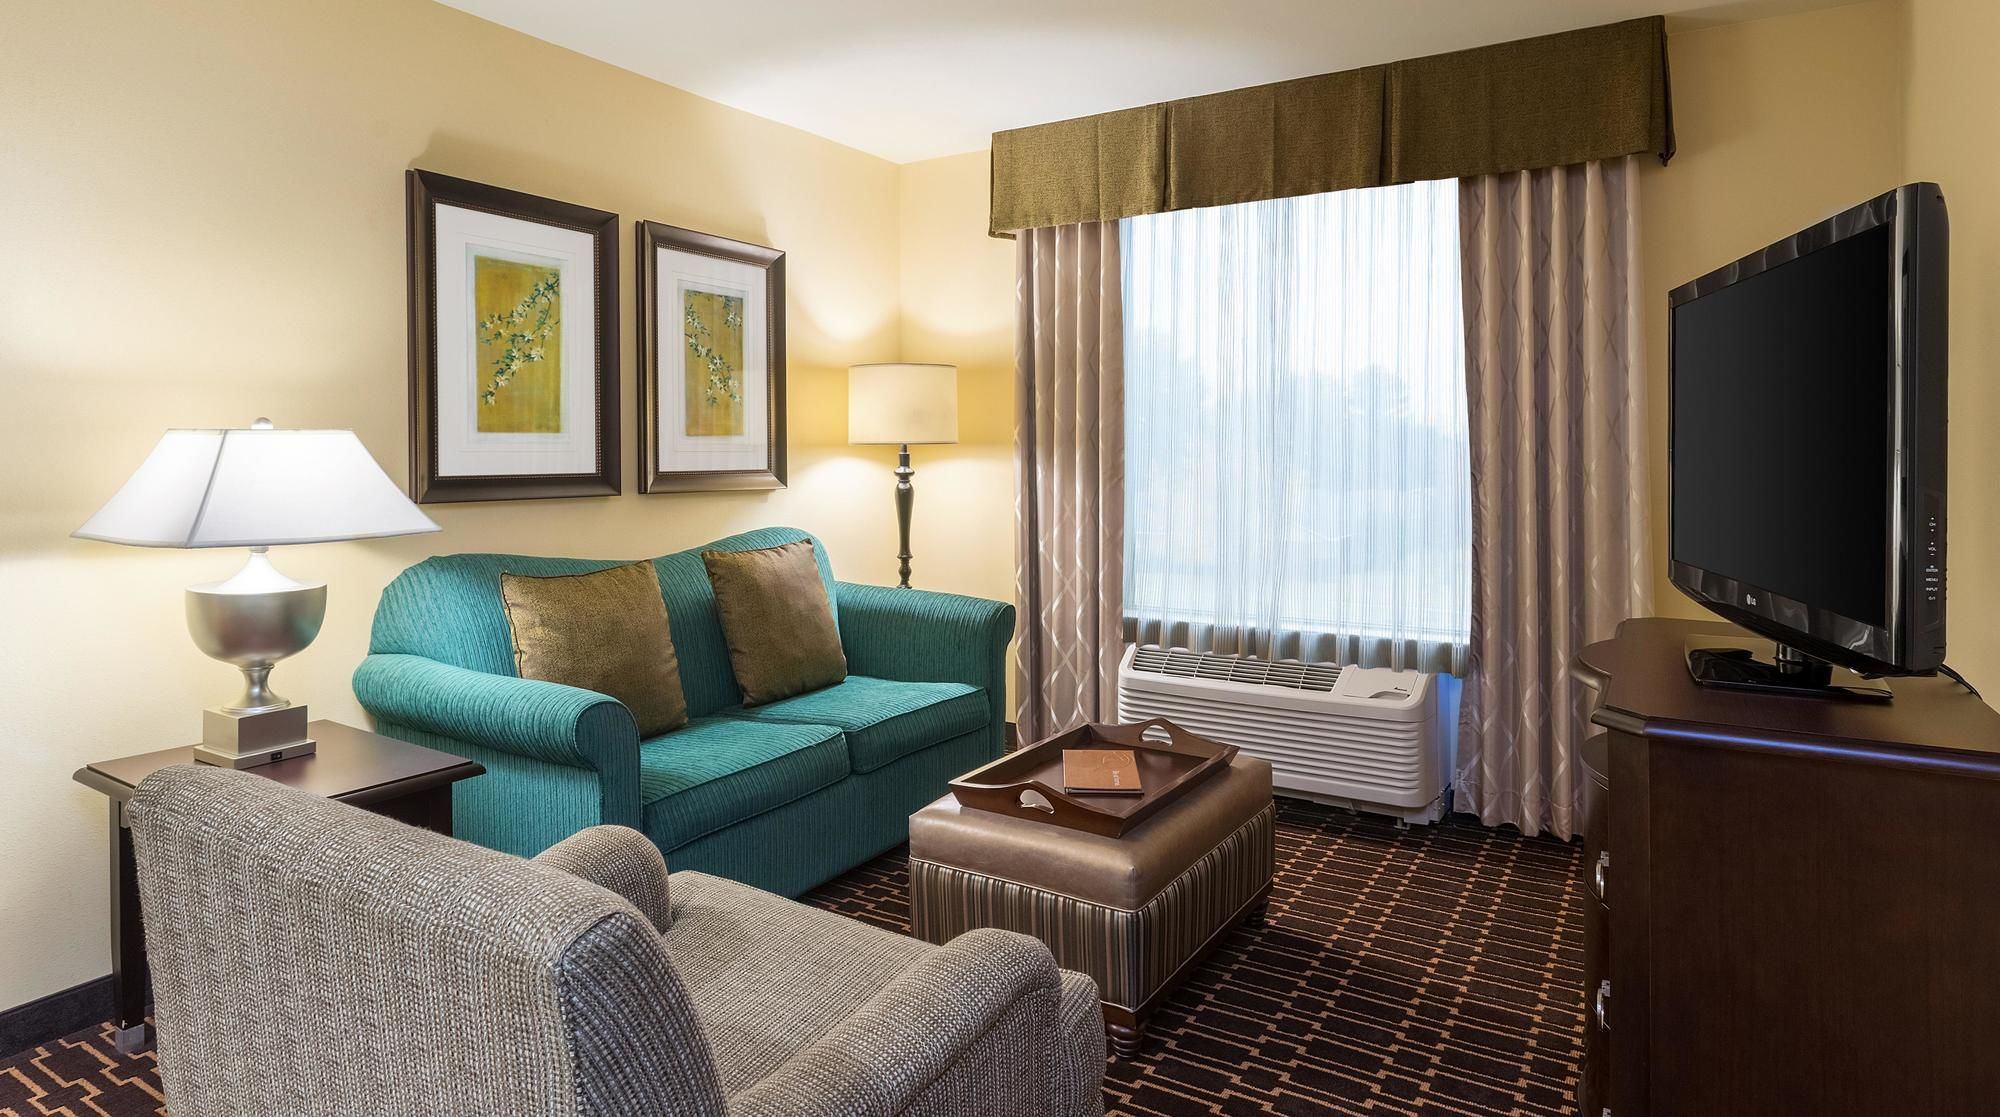 Bossier City Hotel Coupons For Bossier City Louisiana